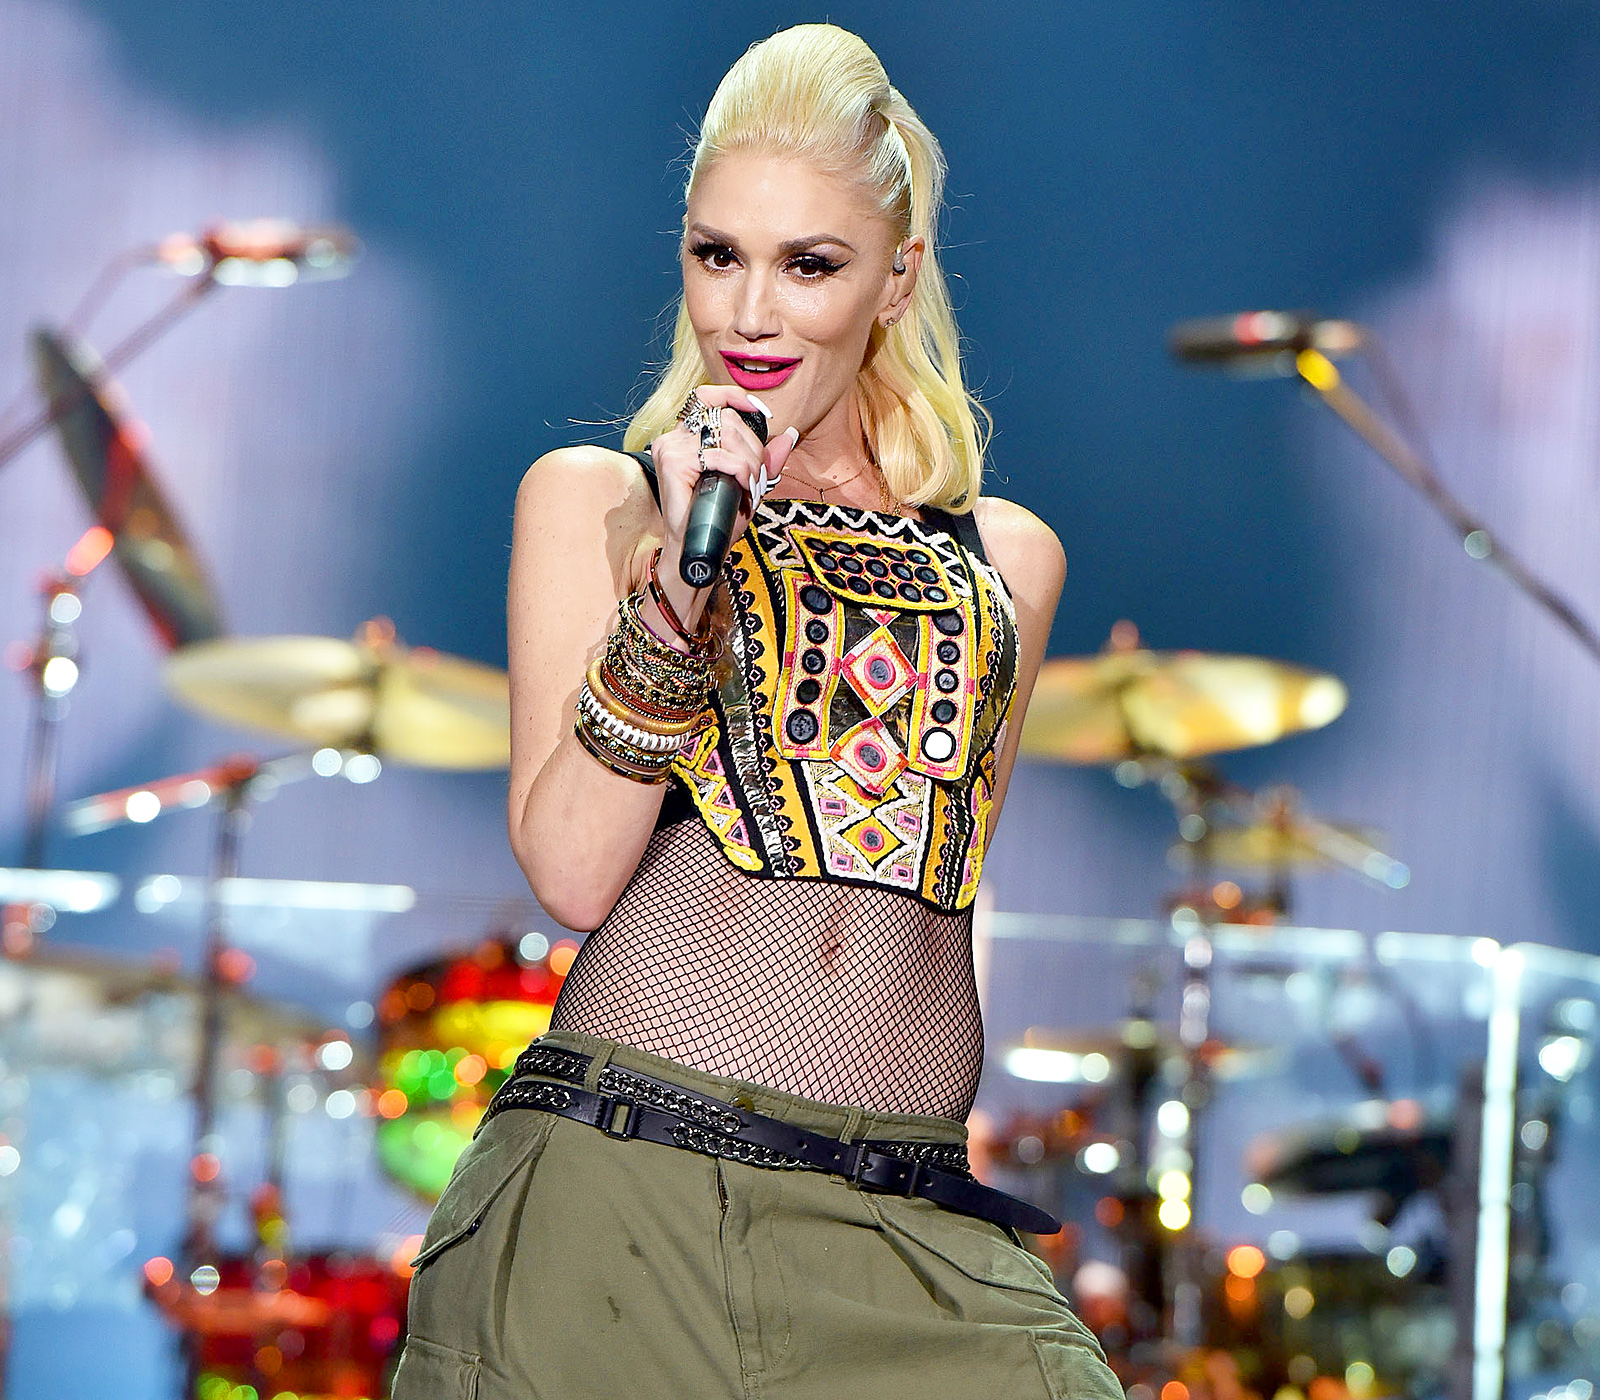 Just a girl heading to Vegas: Gwen Stefani announces residency